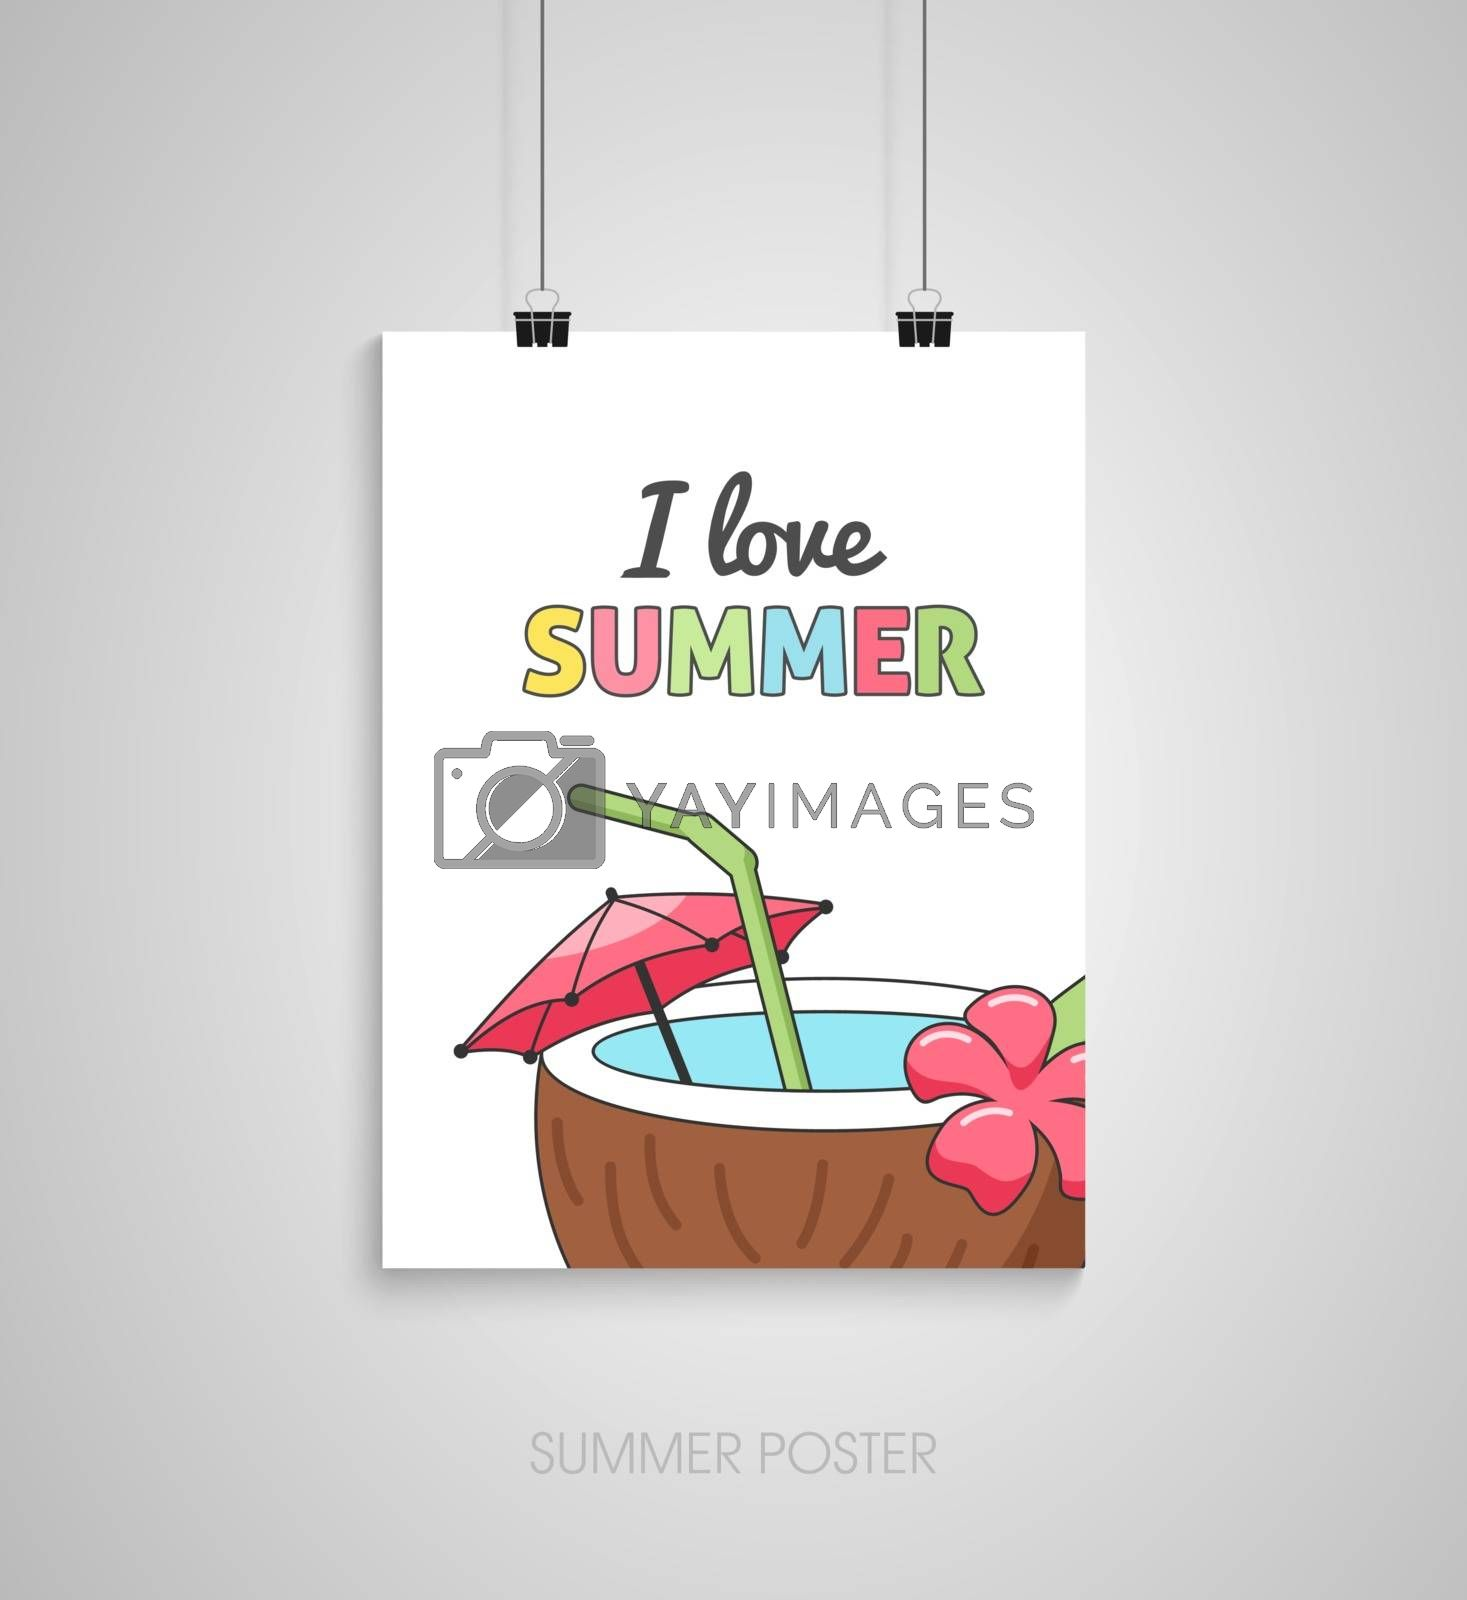 Summer flyer card with coconut beach tropical cocktail with straw. I love summer. Journal cards. Vector illustrations for t-shirt, poster prints. Holiday, travel, vacation theme